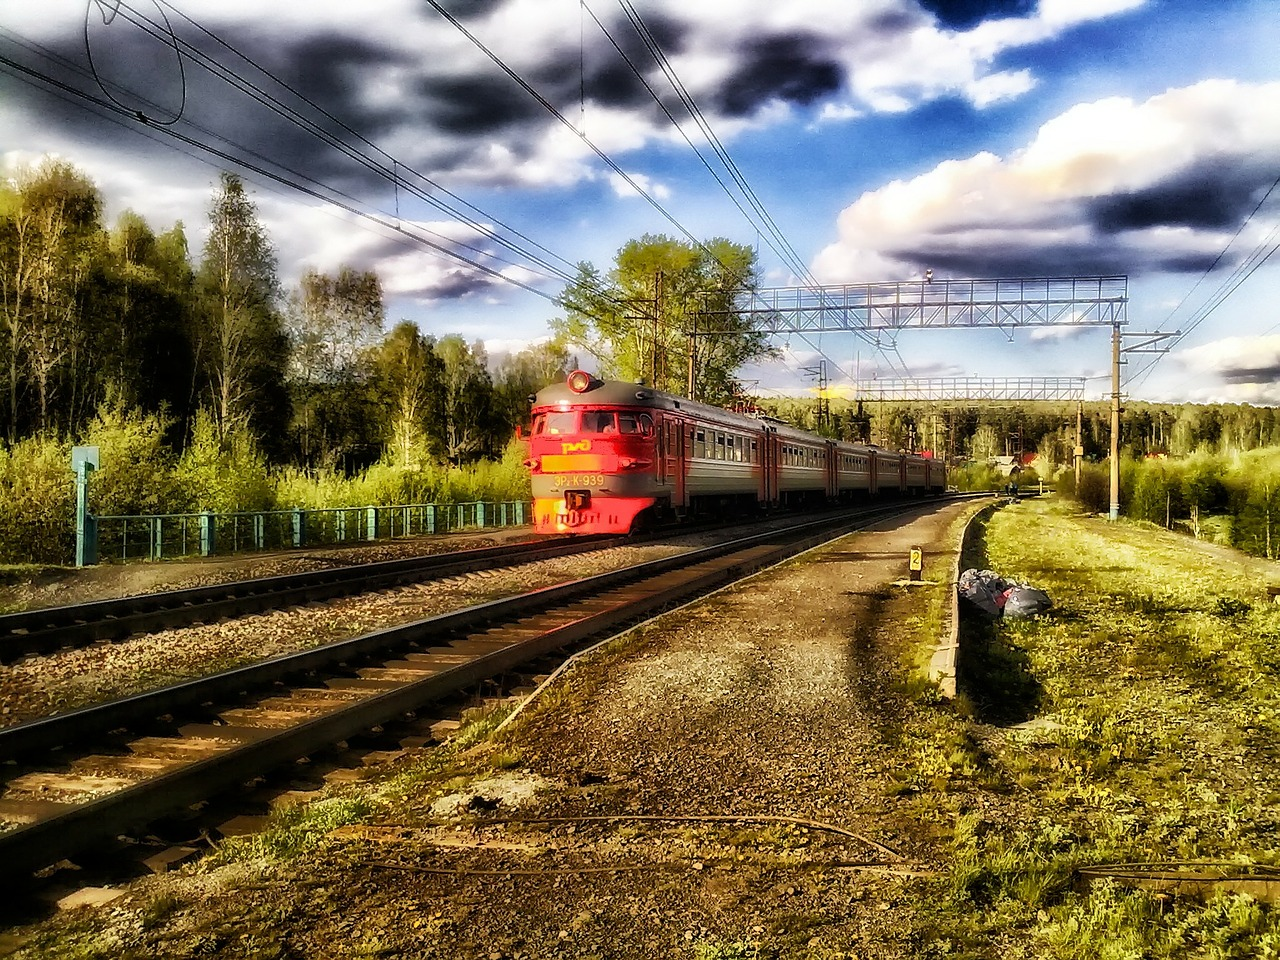 sverdlovsk,russia,train,transportation,travel,rail,railroad,track,tracks,hdr,sky,clouds,landscape,scenic,trees,nature,outside,summer,spring,country,countryside,free pictures, free photos, free images, royalty free, free illustrations, public domain